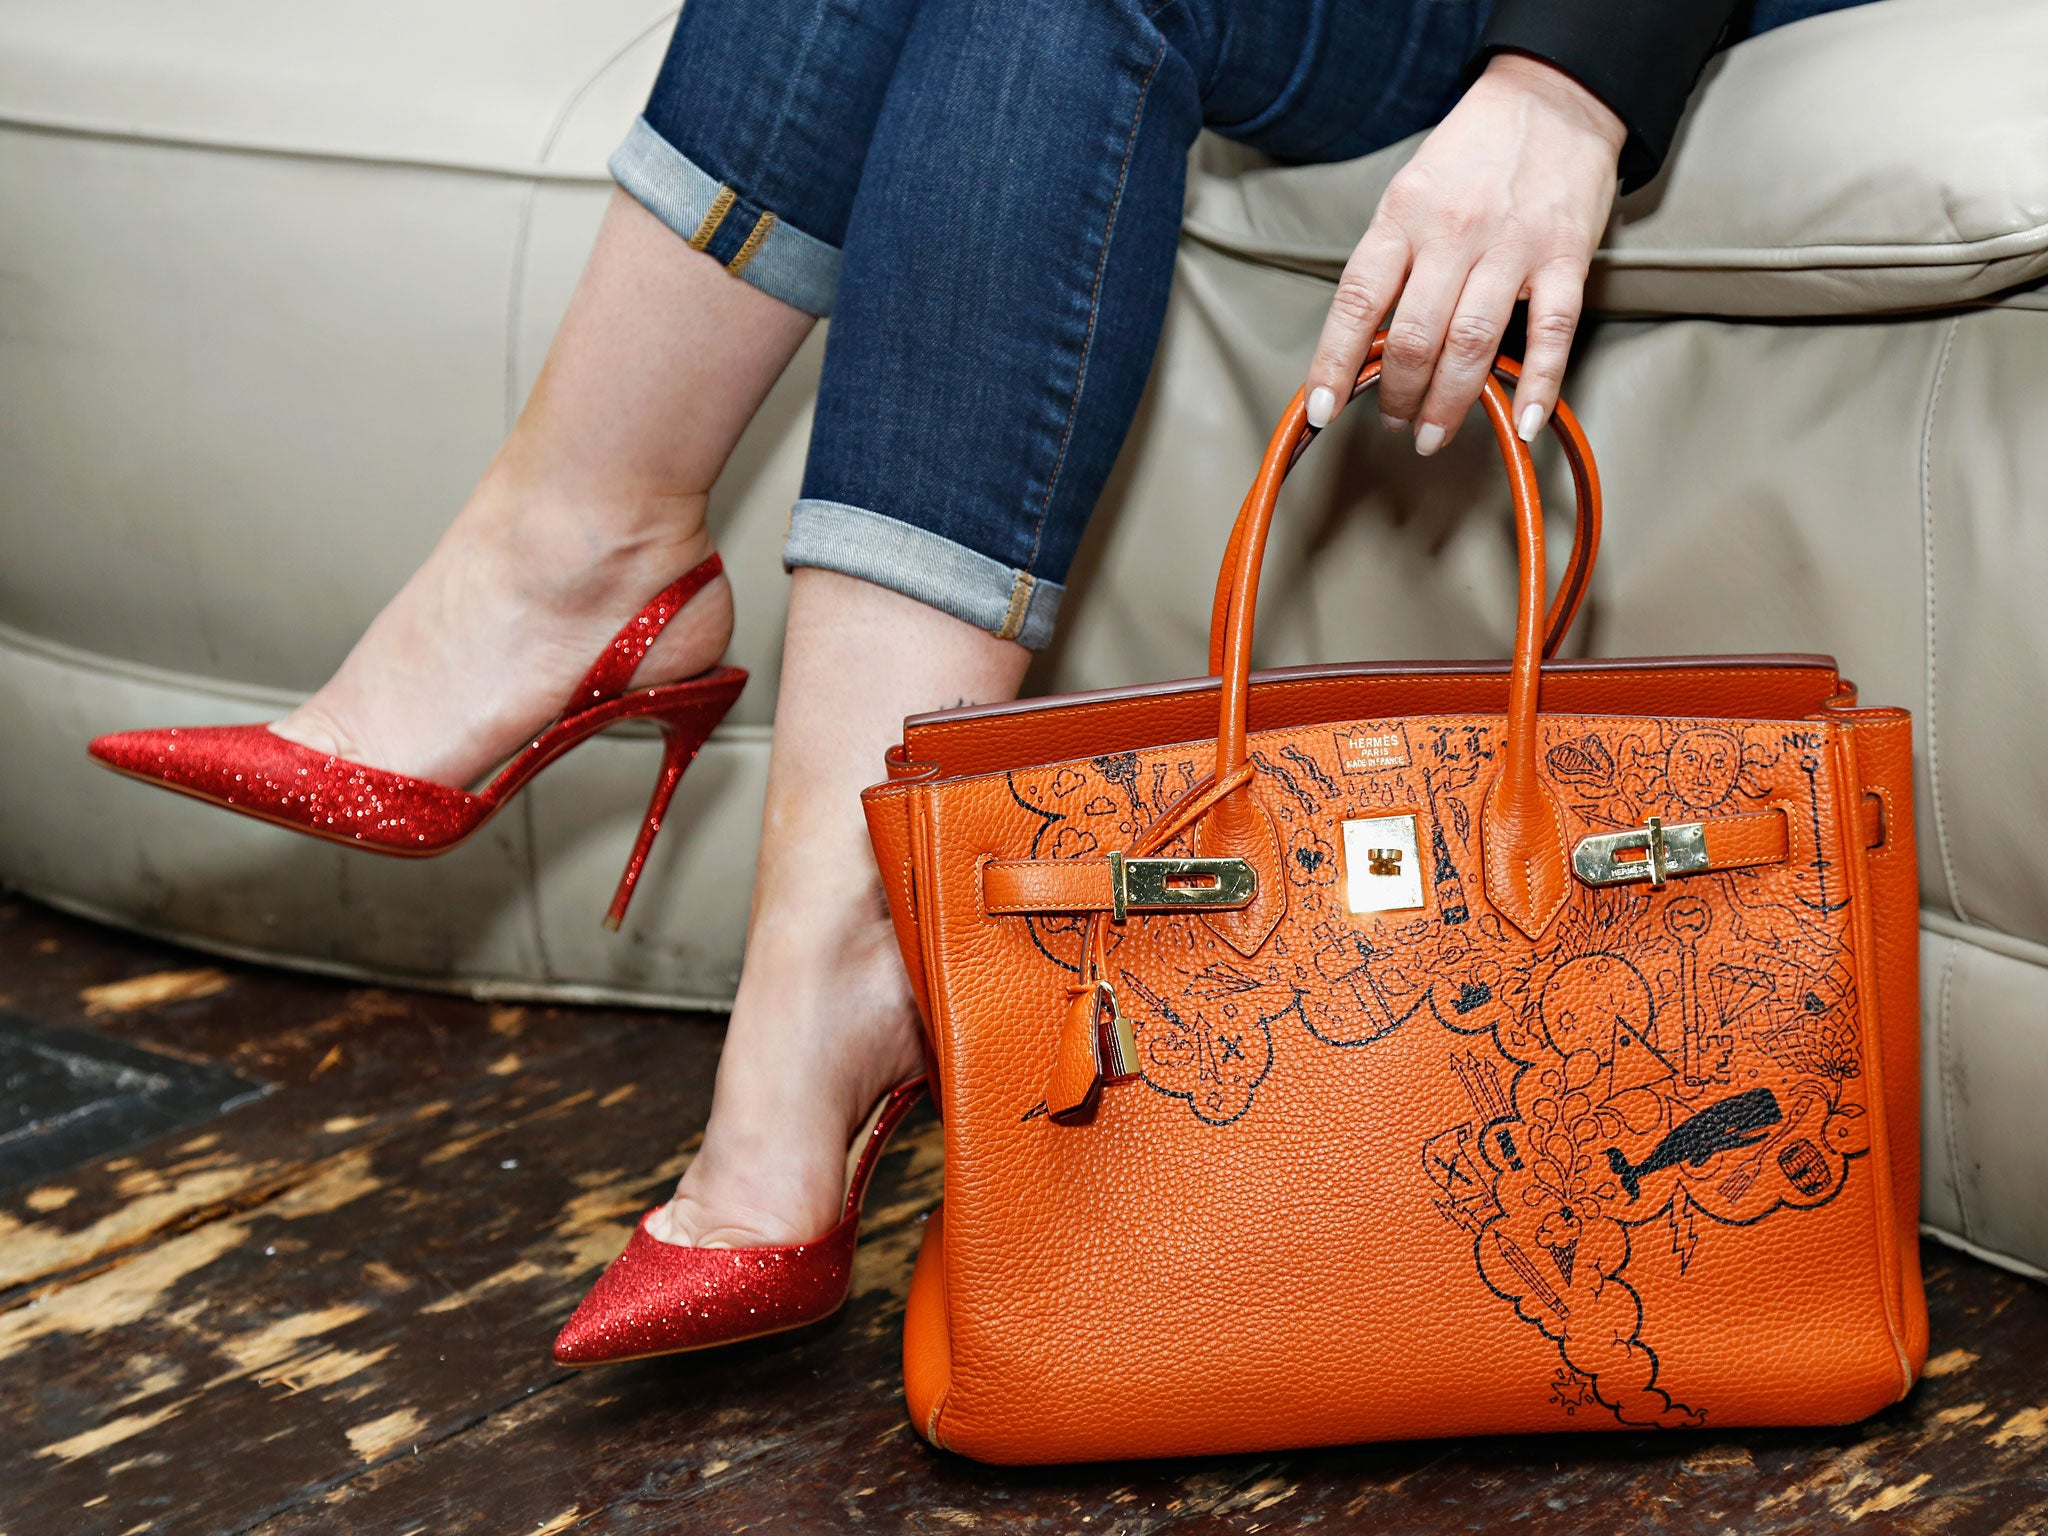 Parisian Glamour For The Capital As Hermes Announces New Megastore In London